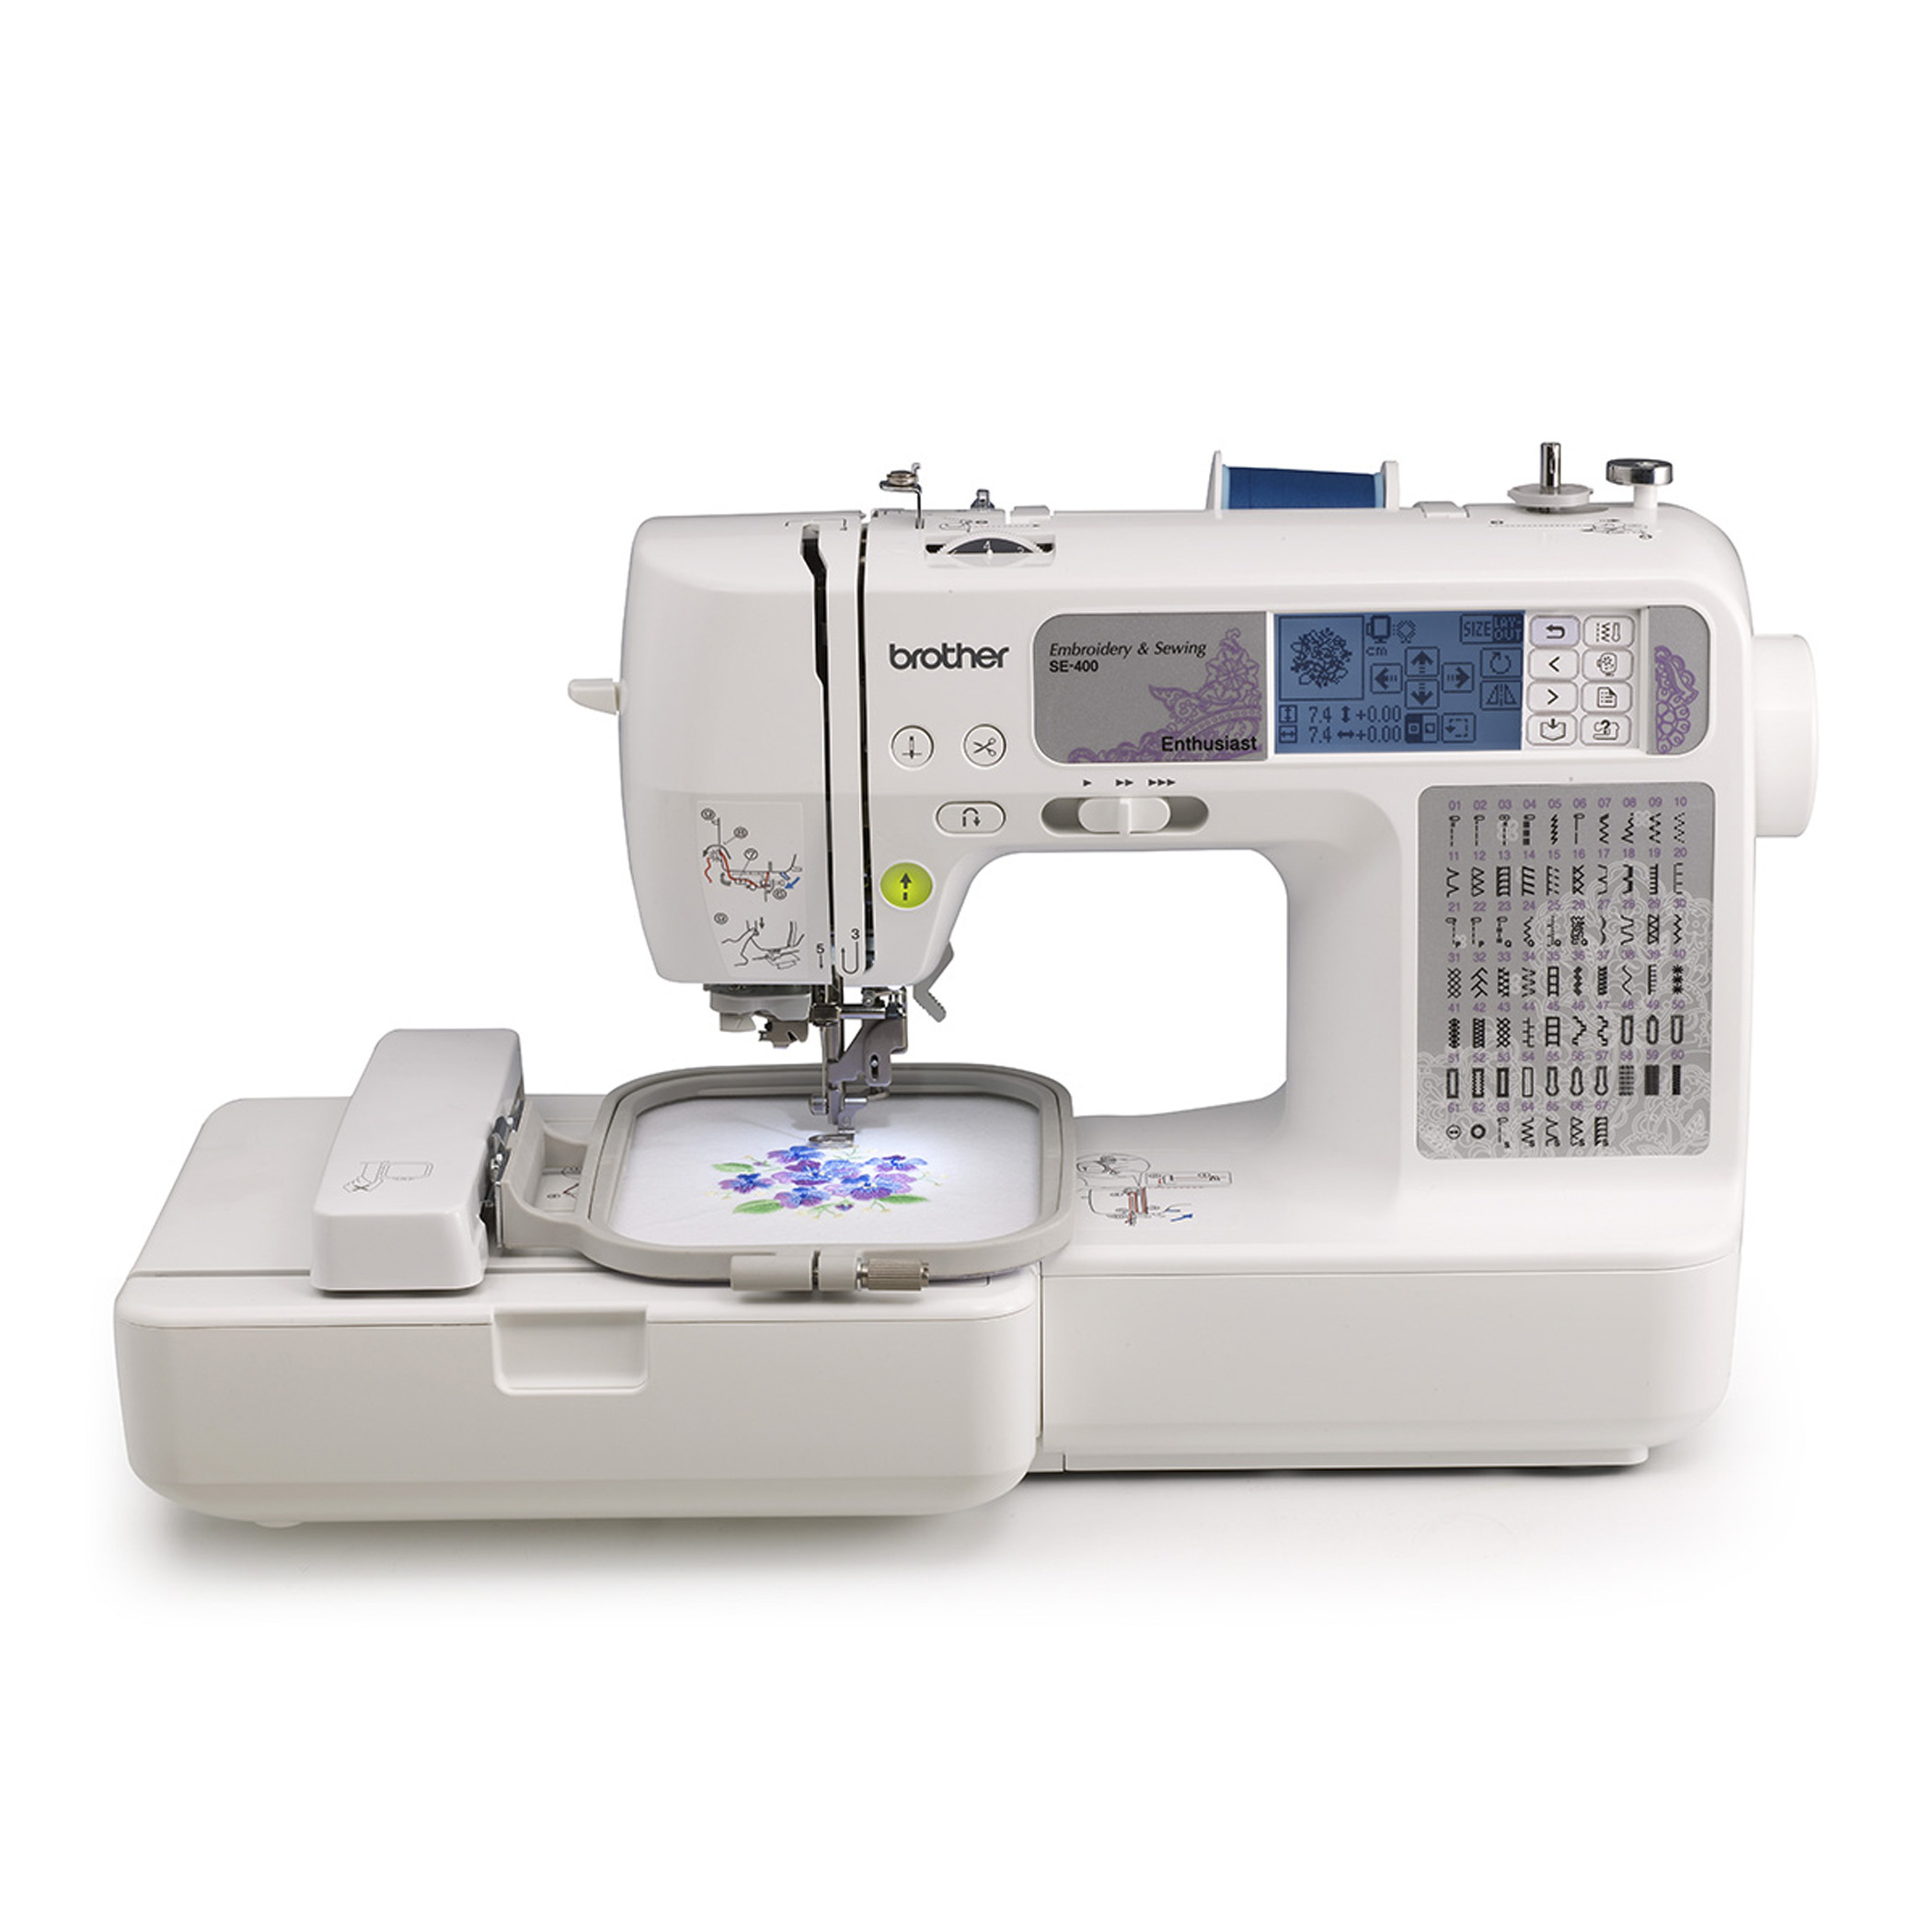 Brother SE-400 Computerized Sewing and Embroidery Machine